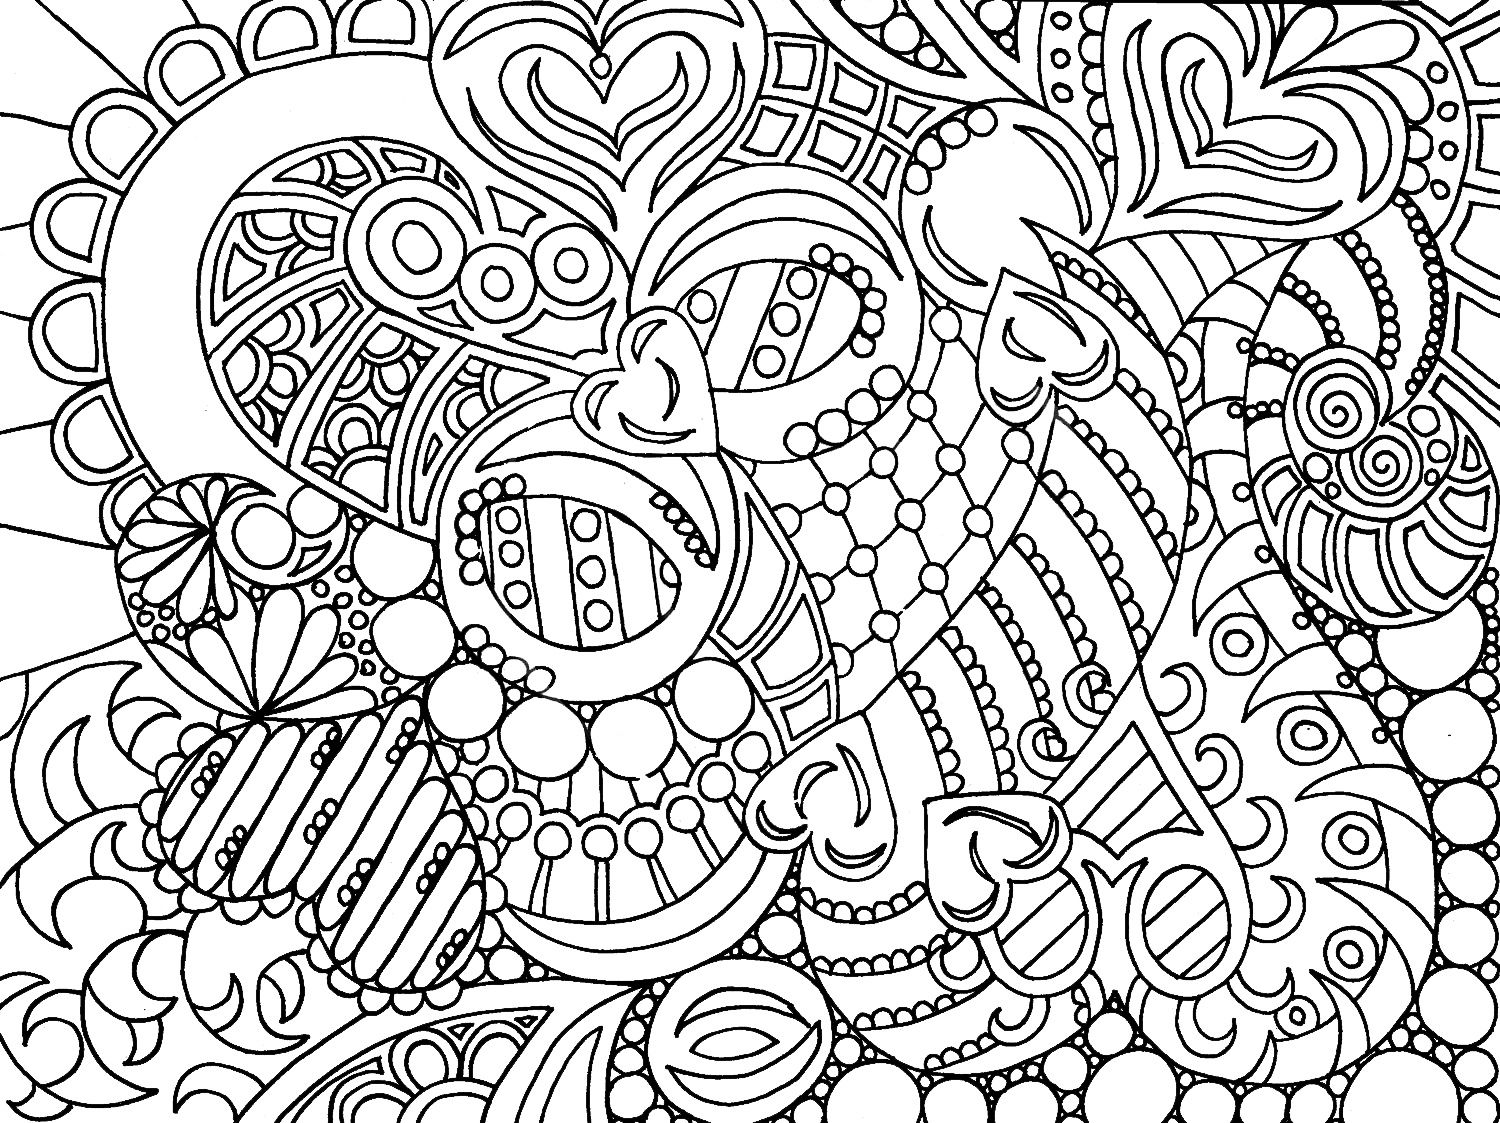 1500x1123 downloadable colouring pages for relieving stress and anxiety